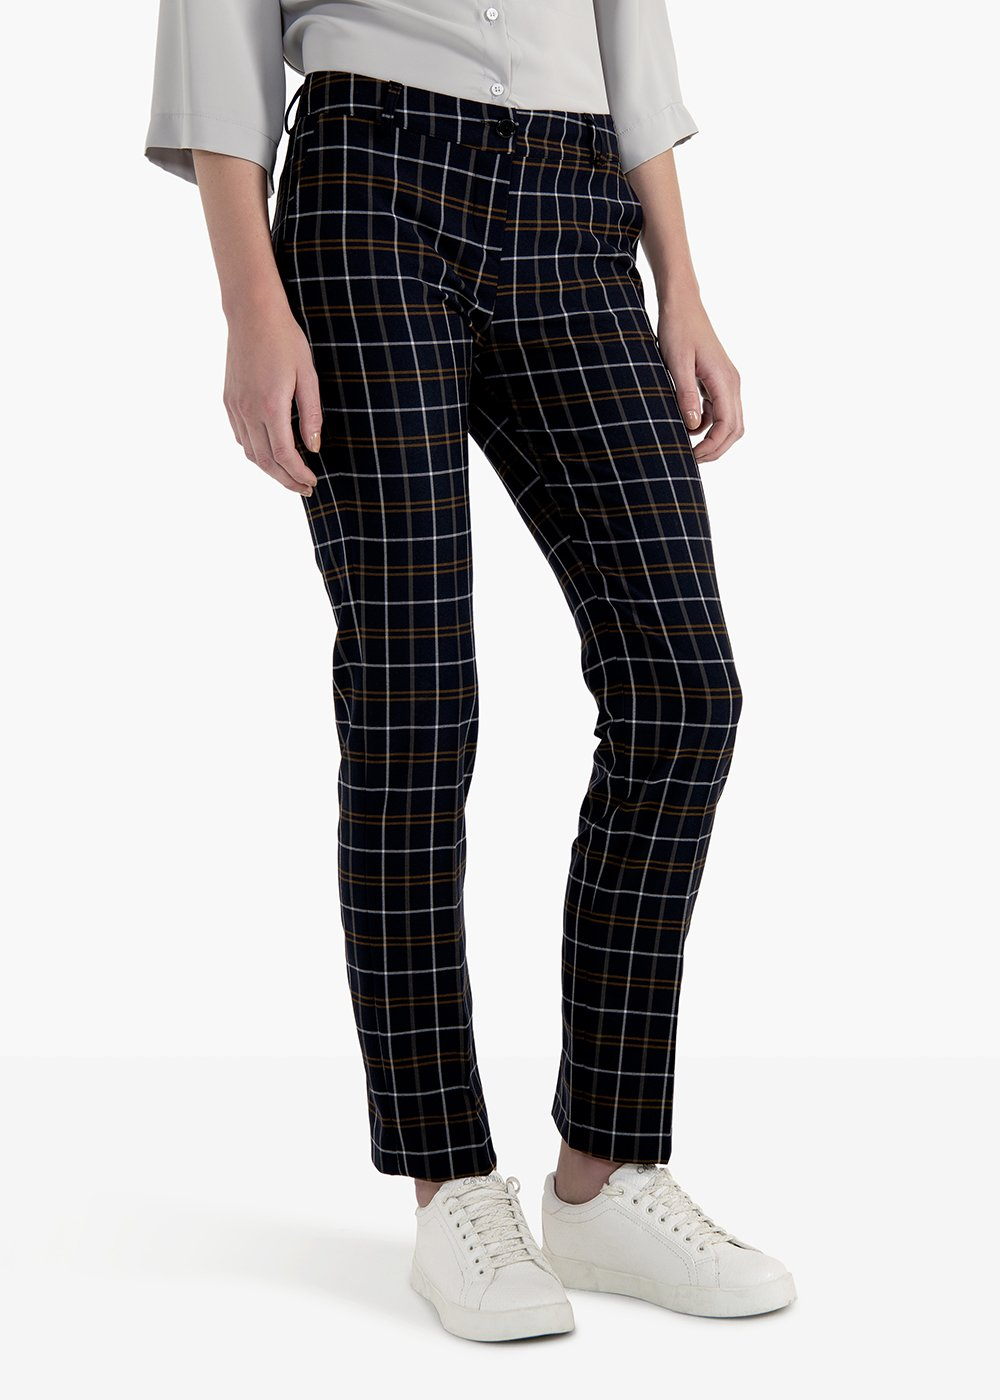 Clair trousers in check pattern polyvinol with men's pockets - Tobacco /  BlackFantasia - Woman